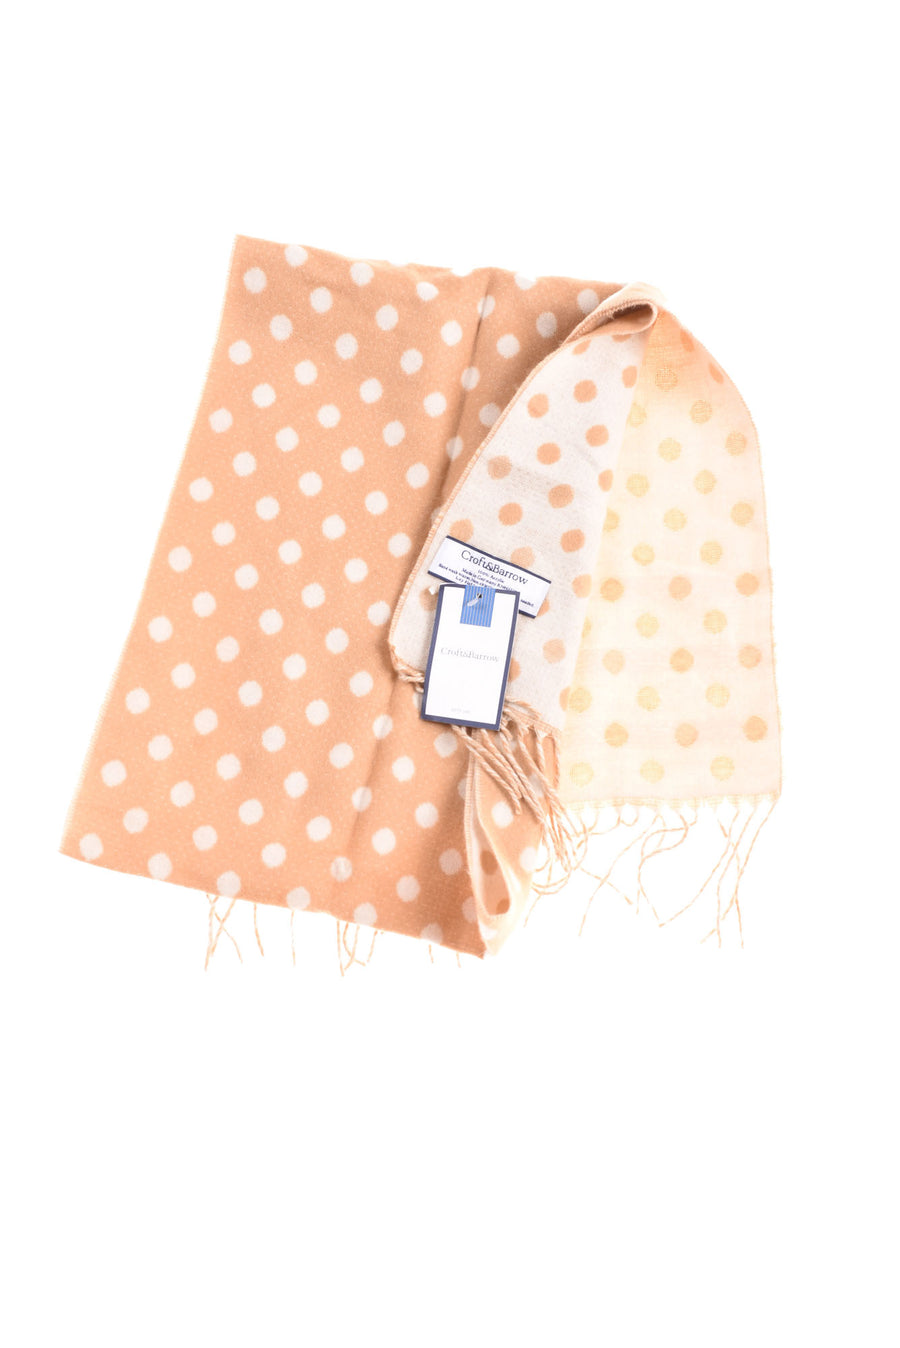 NEW Croft & Barrow Women's Scarf One Size Light Brown & Beige